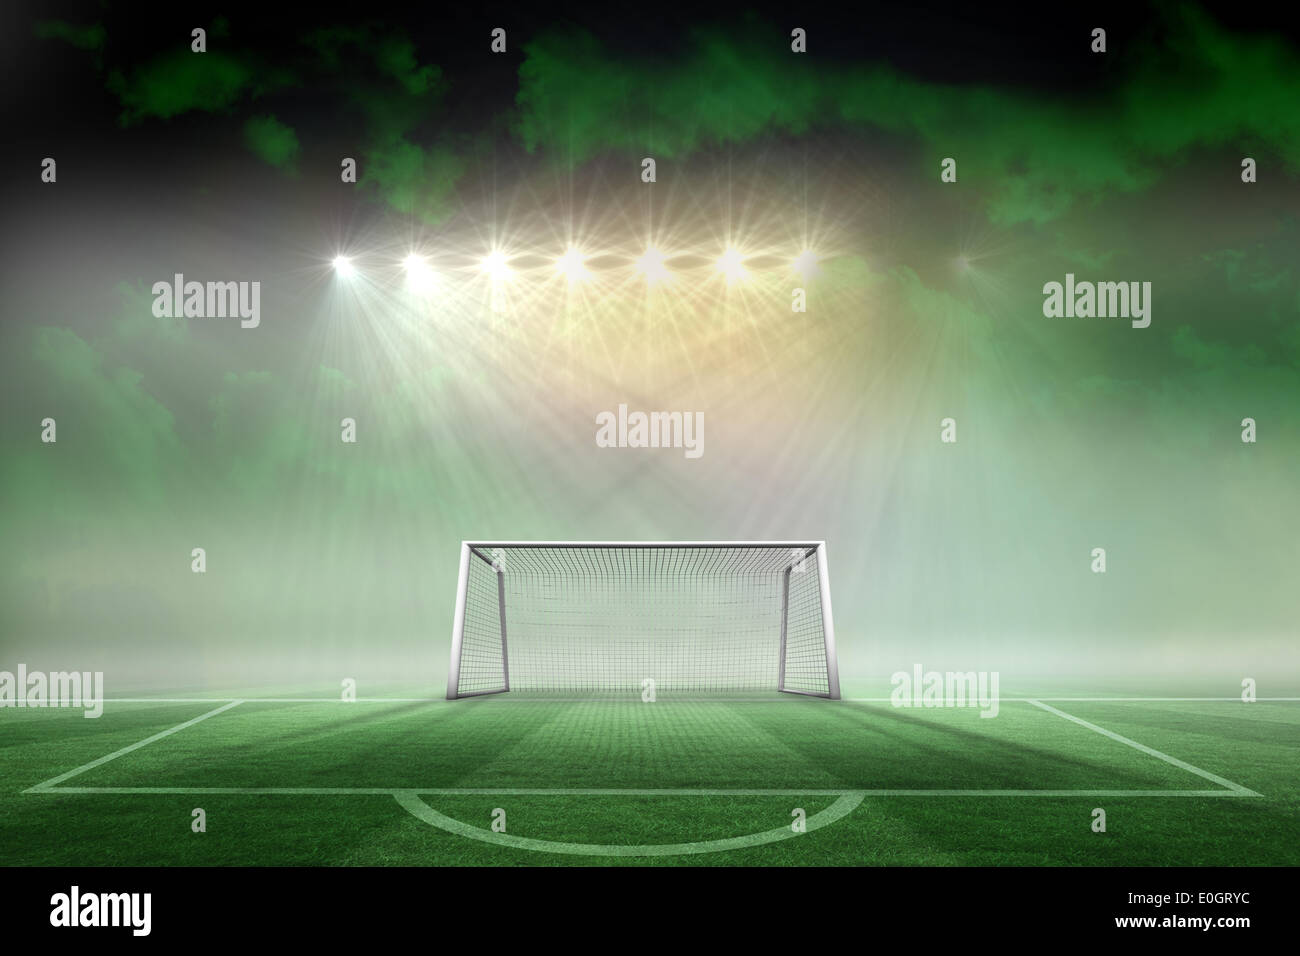 Football pitch and goal under spotlights - Stock Image